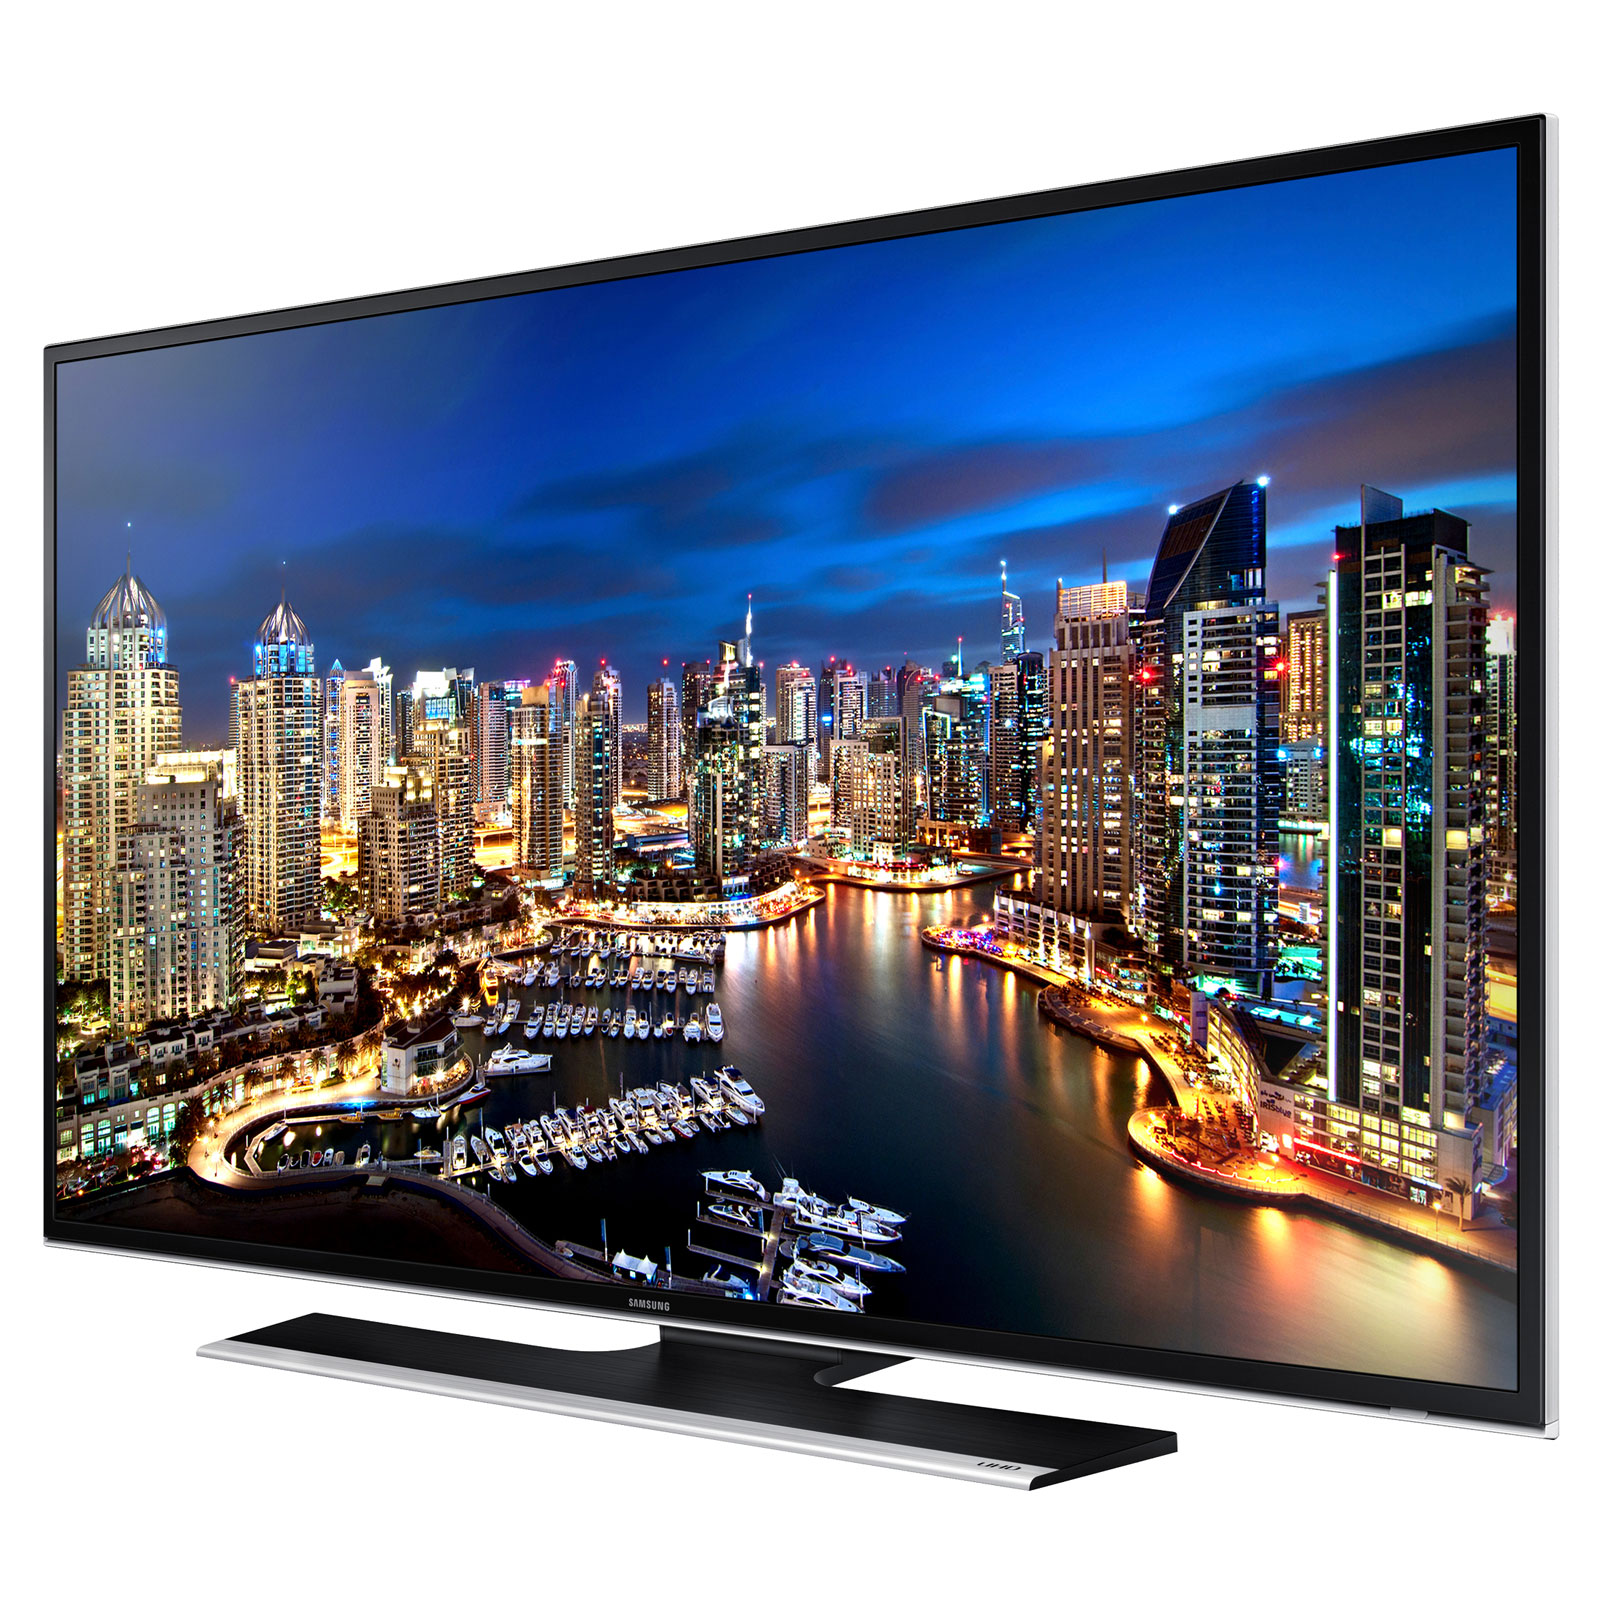 samsung ue40hu6900 t l viseur led 4k 102 cm comparer avec. Black Bedroom Furniture Sets. Home Design Ideas